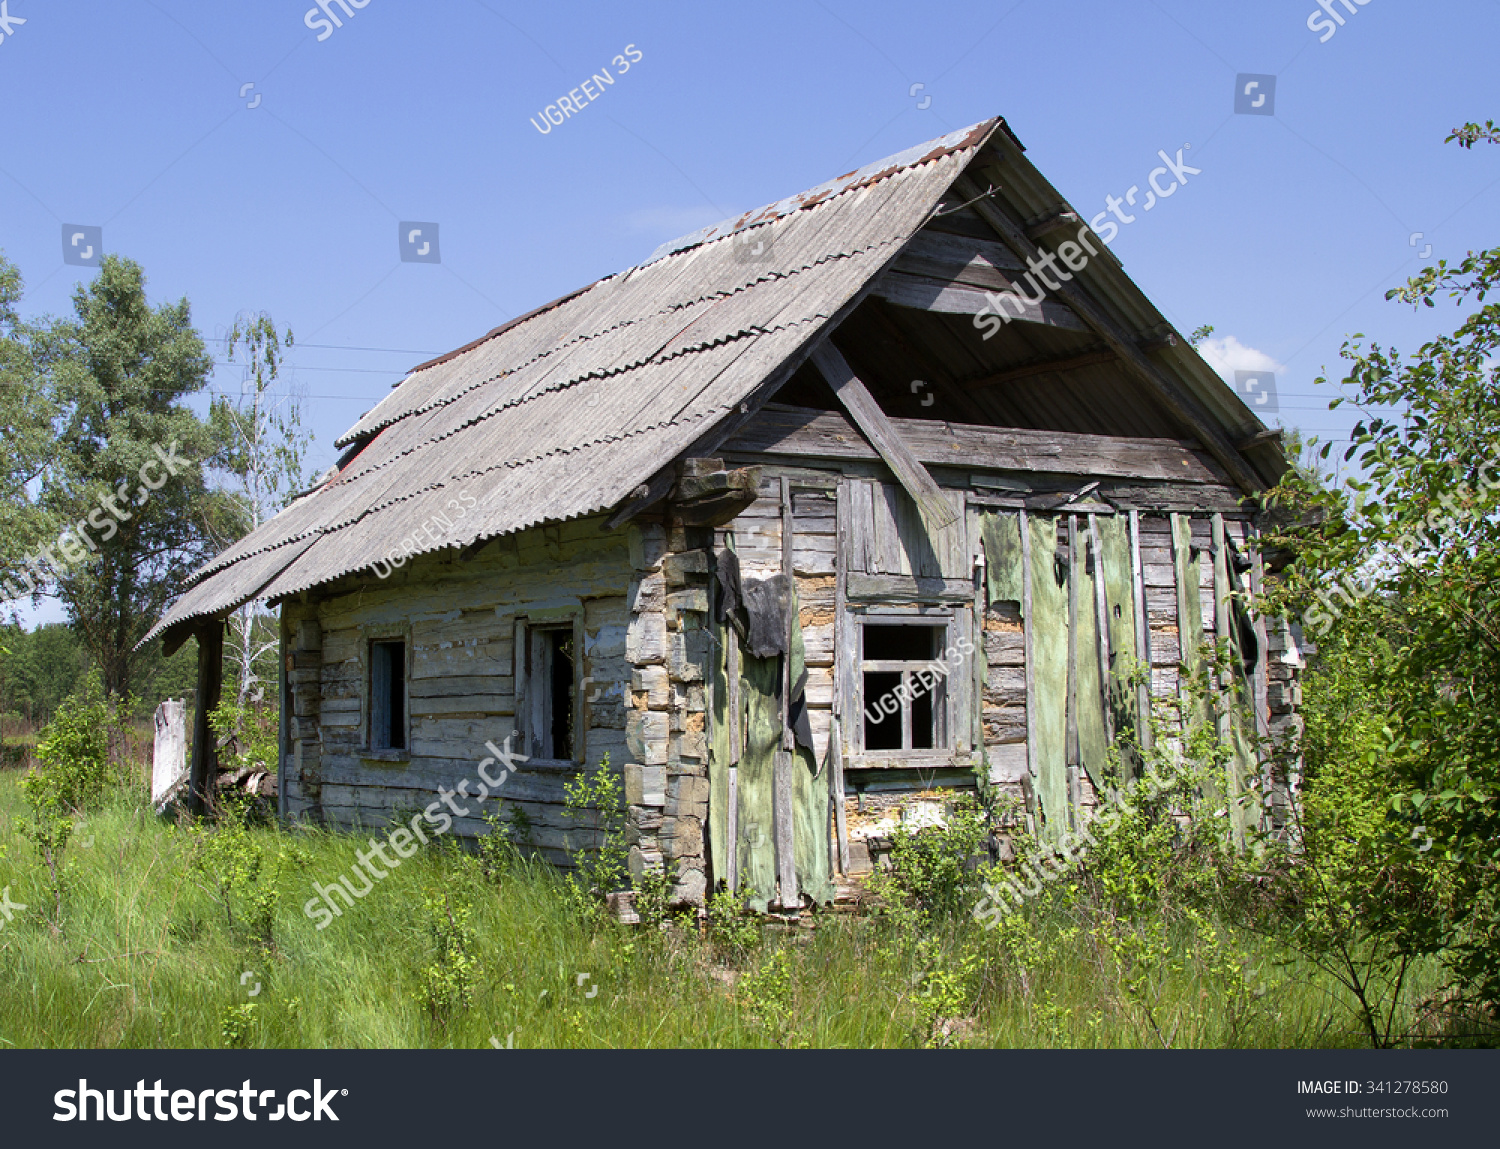 old wooden house old small abandoned stock photo 341278580